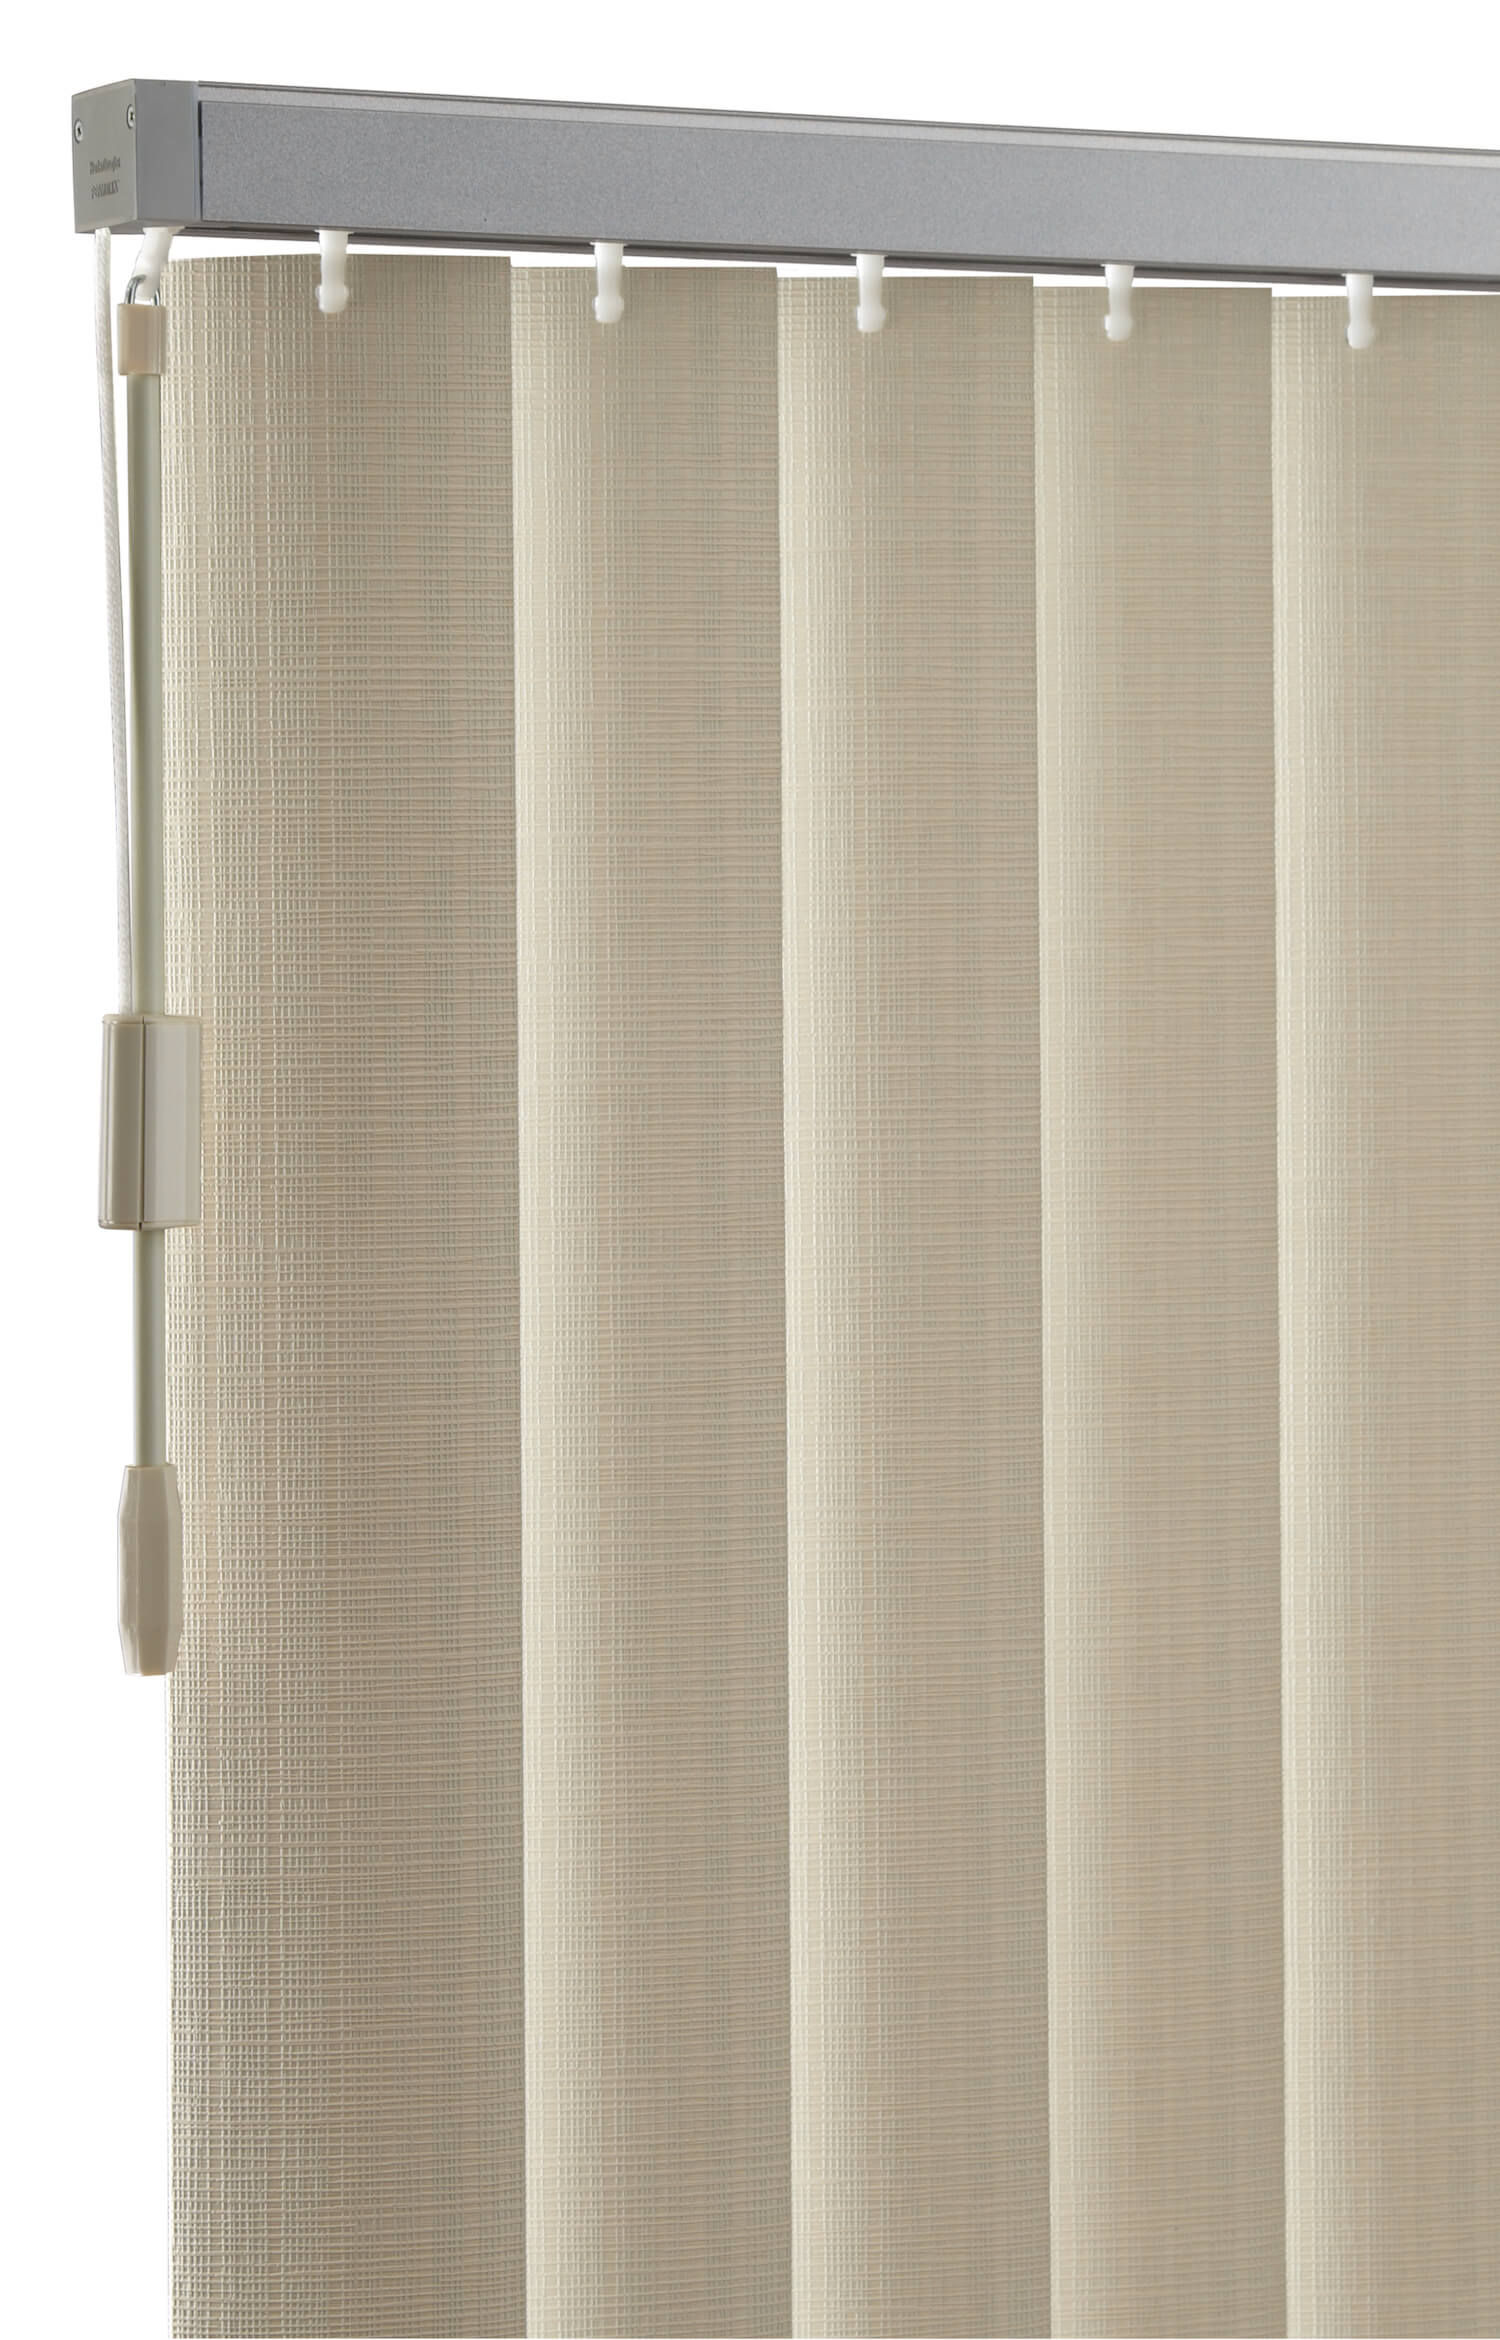 Vertical Solutions PermaTilt Hardware and close up of blinds